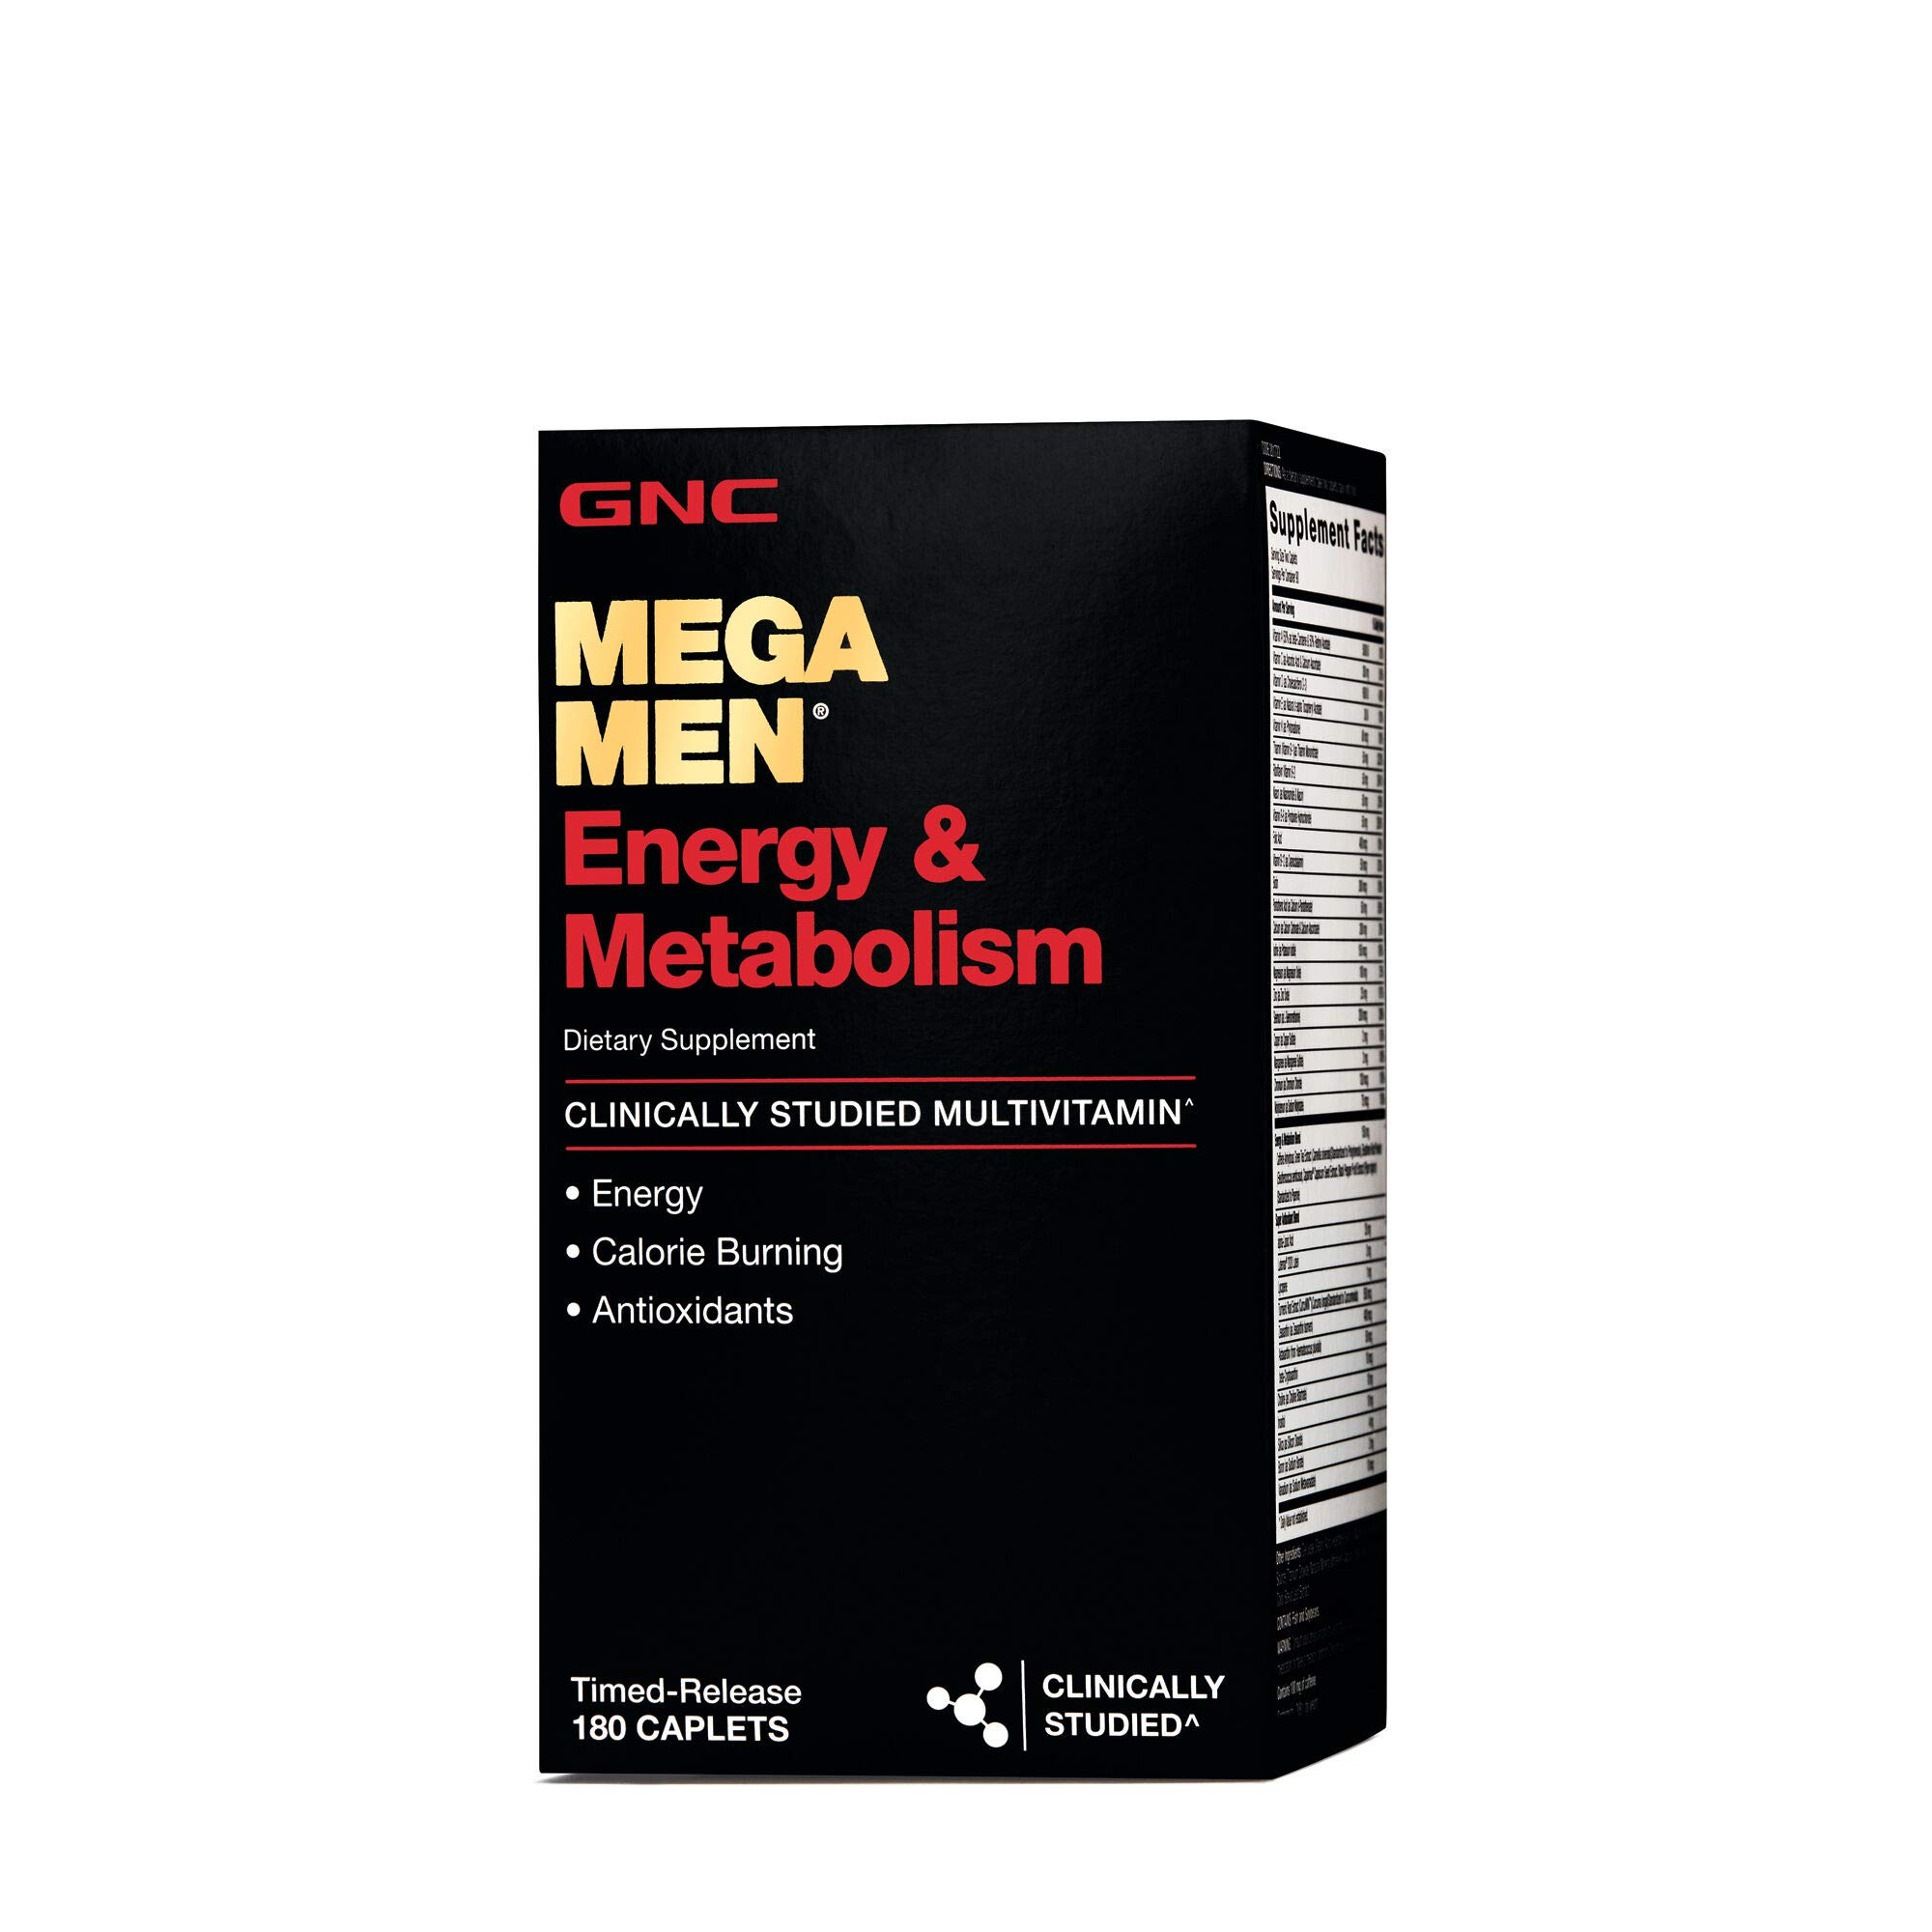 GNC Mega Men Energy Metabolism - 180 Caplets by GNC